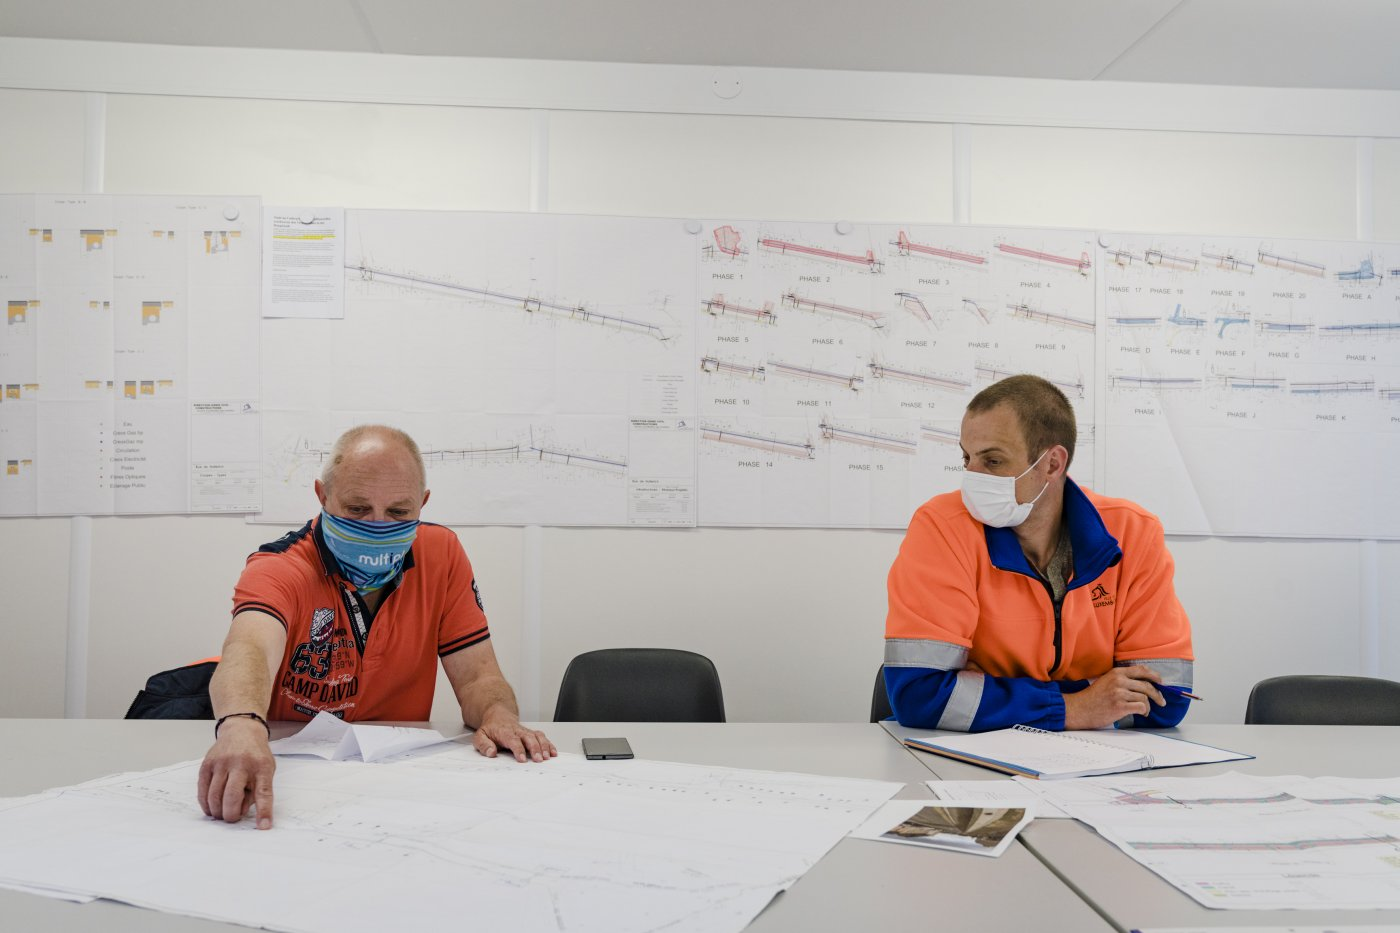 Service Coordination des chantiers - Mir si fir Iech do_04.2020